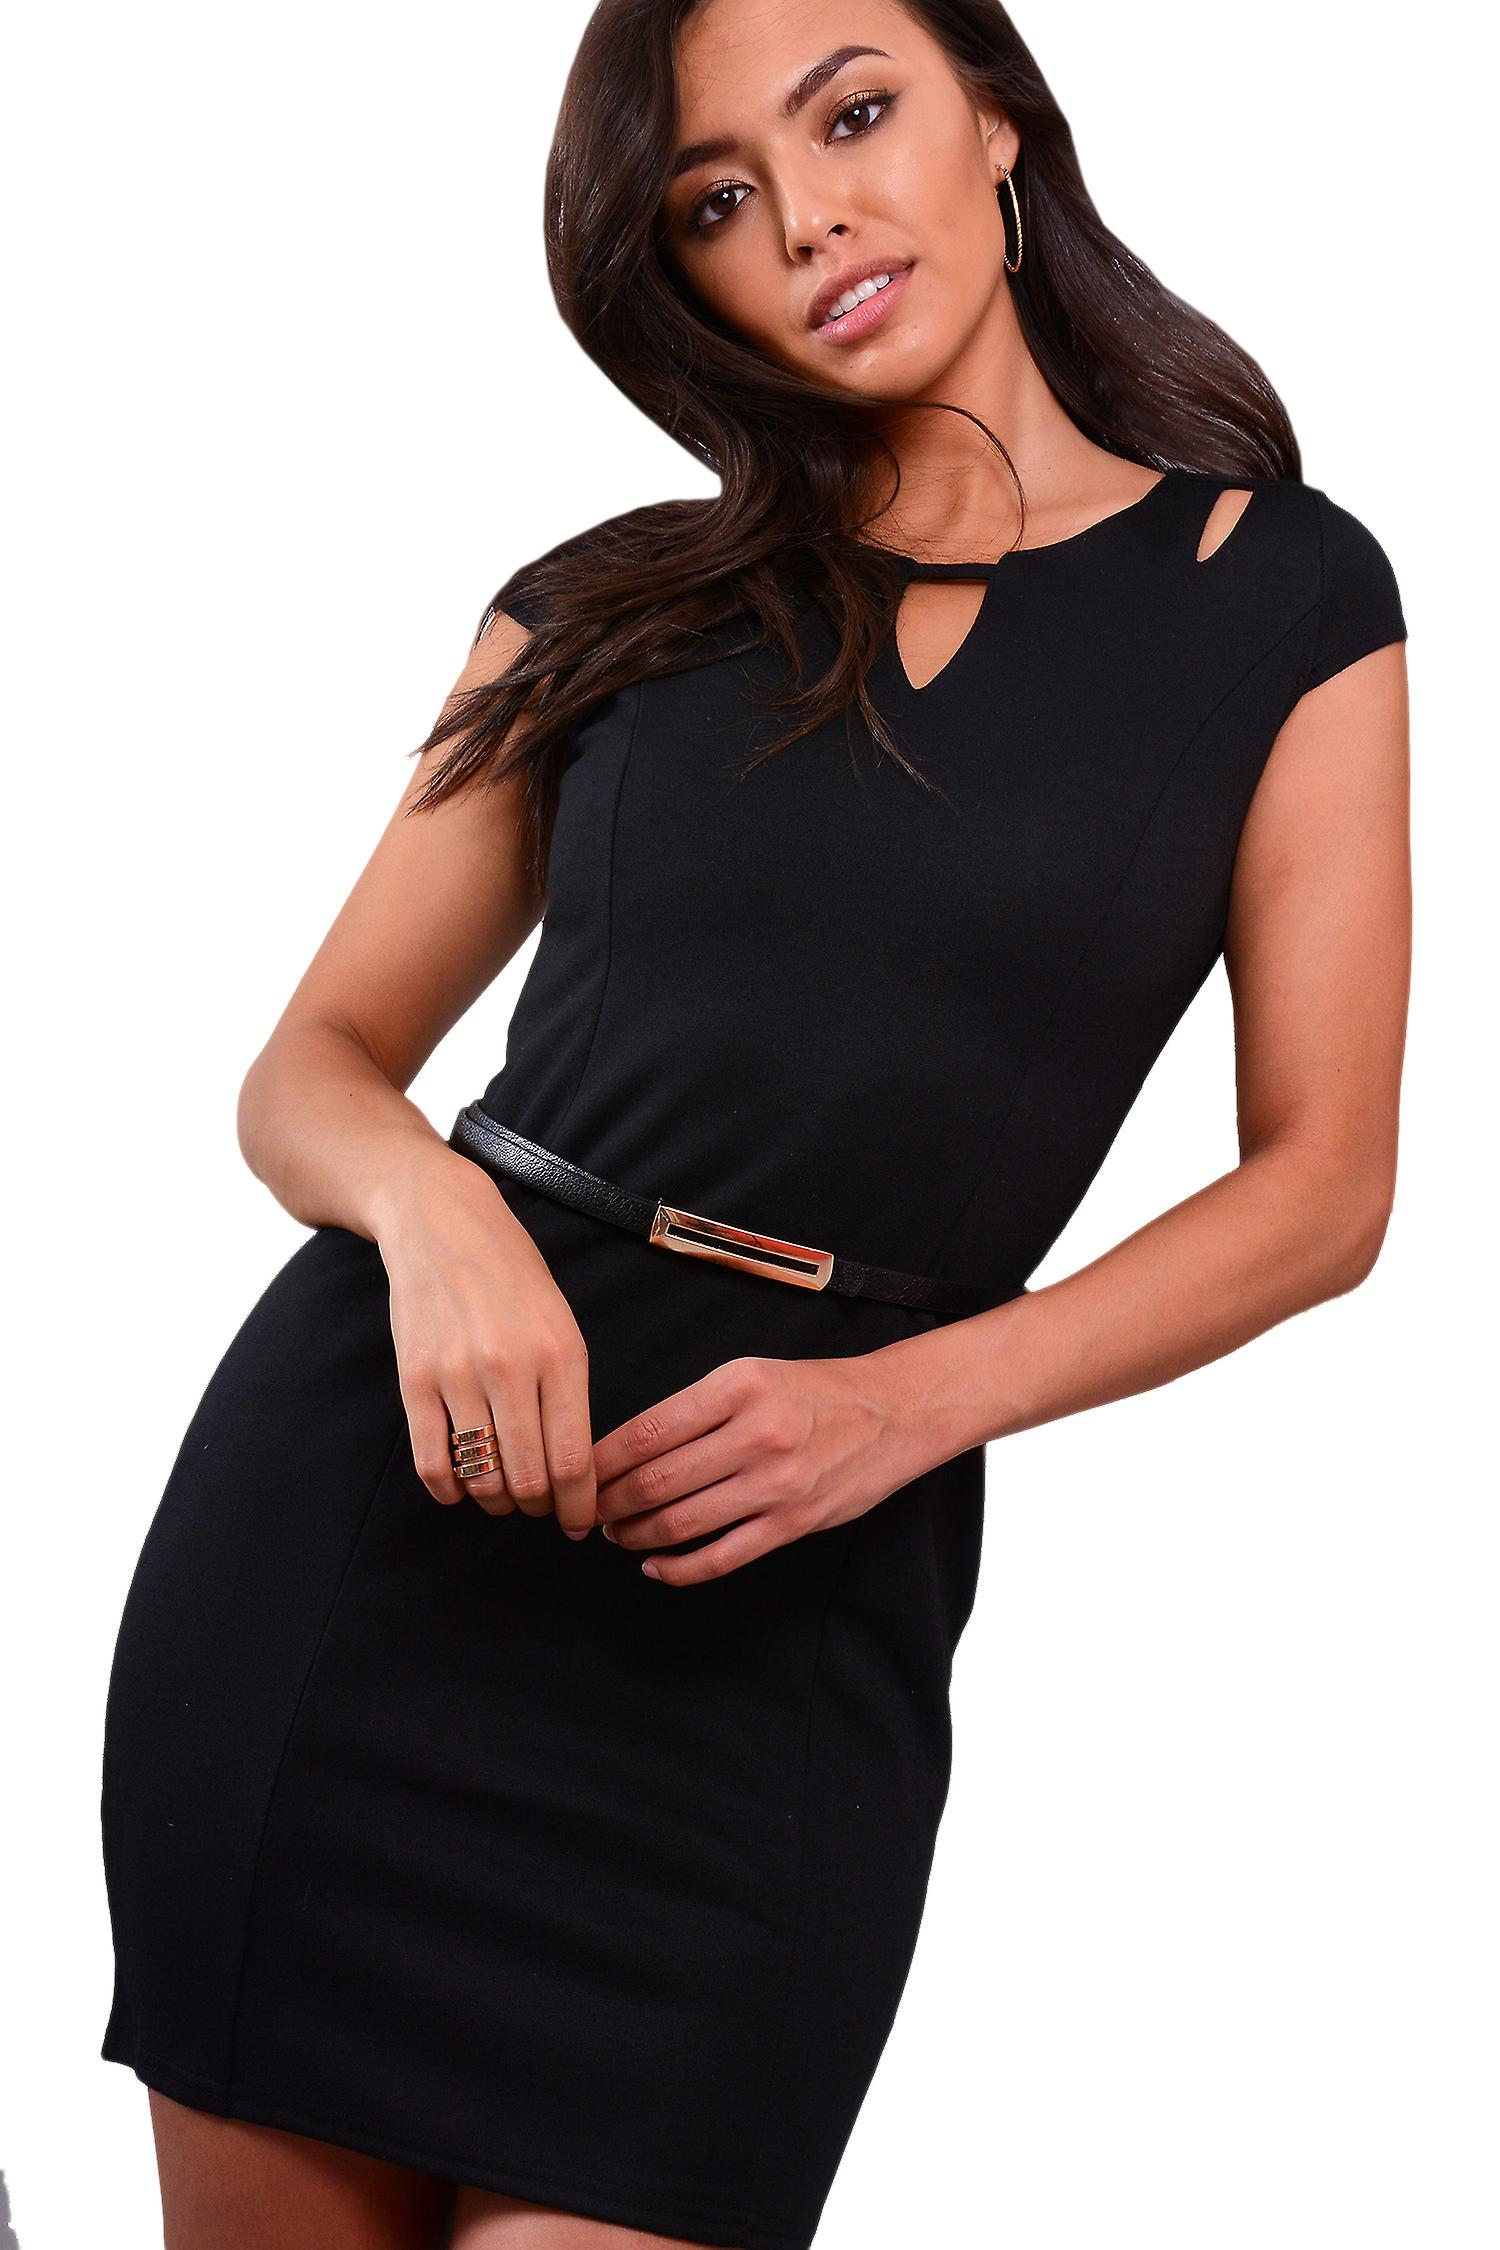 Lovemystyle Black Fitted Pencil Dress With Cutout and Belt